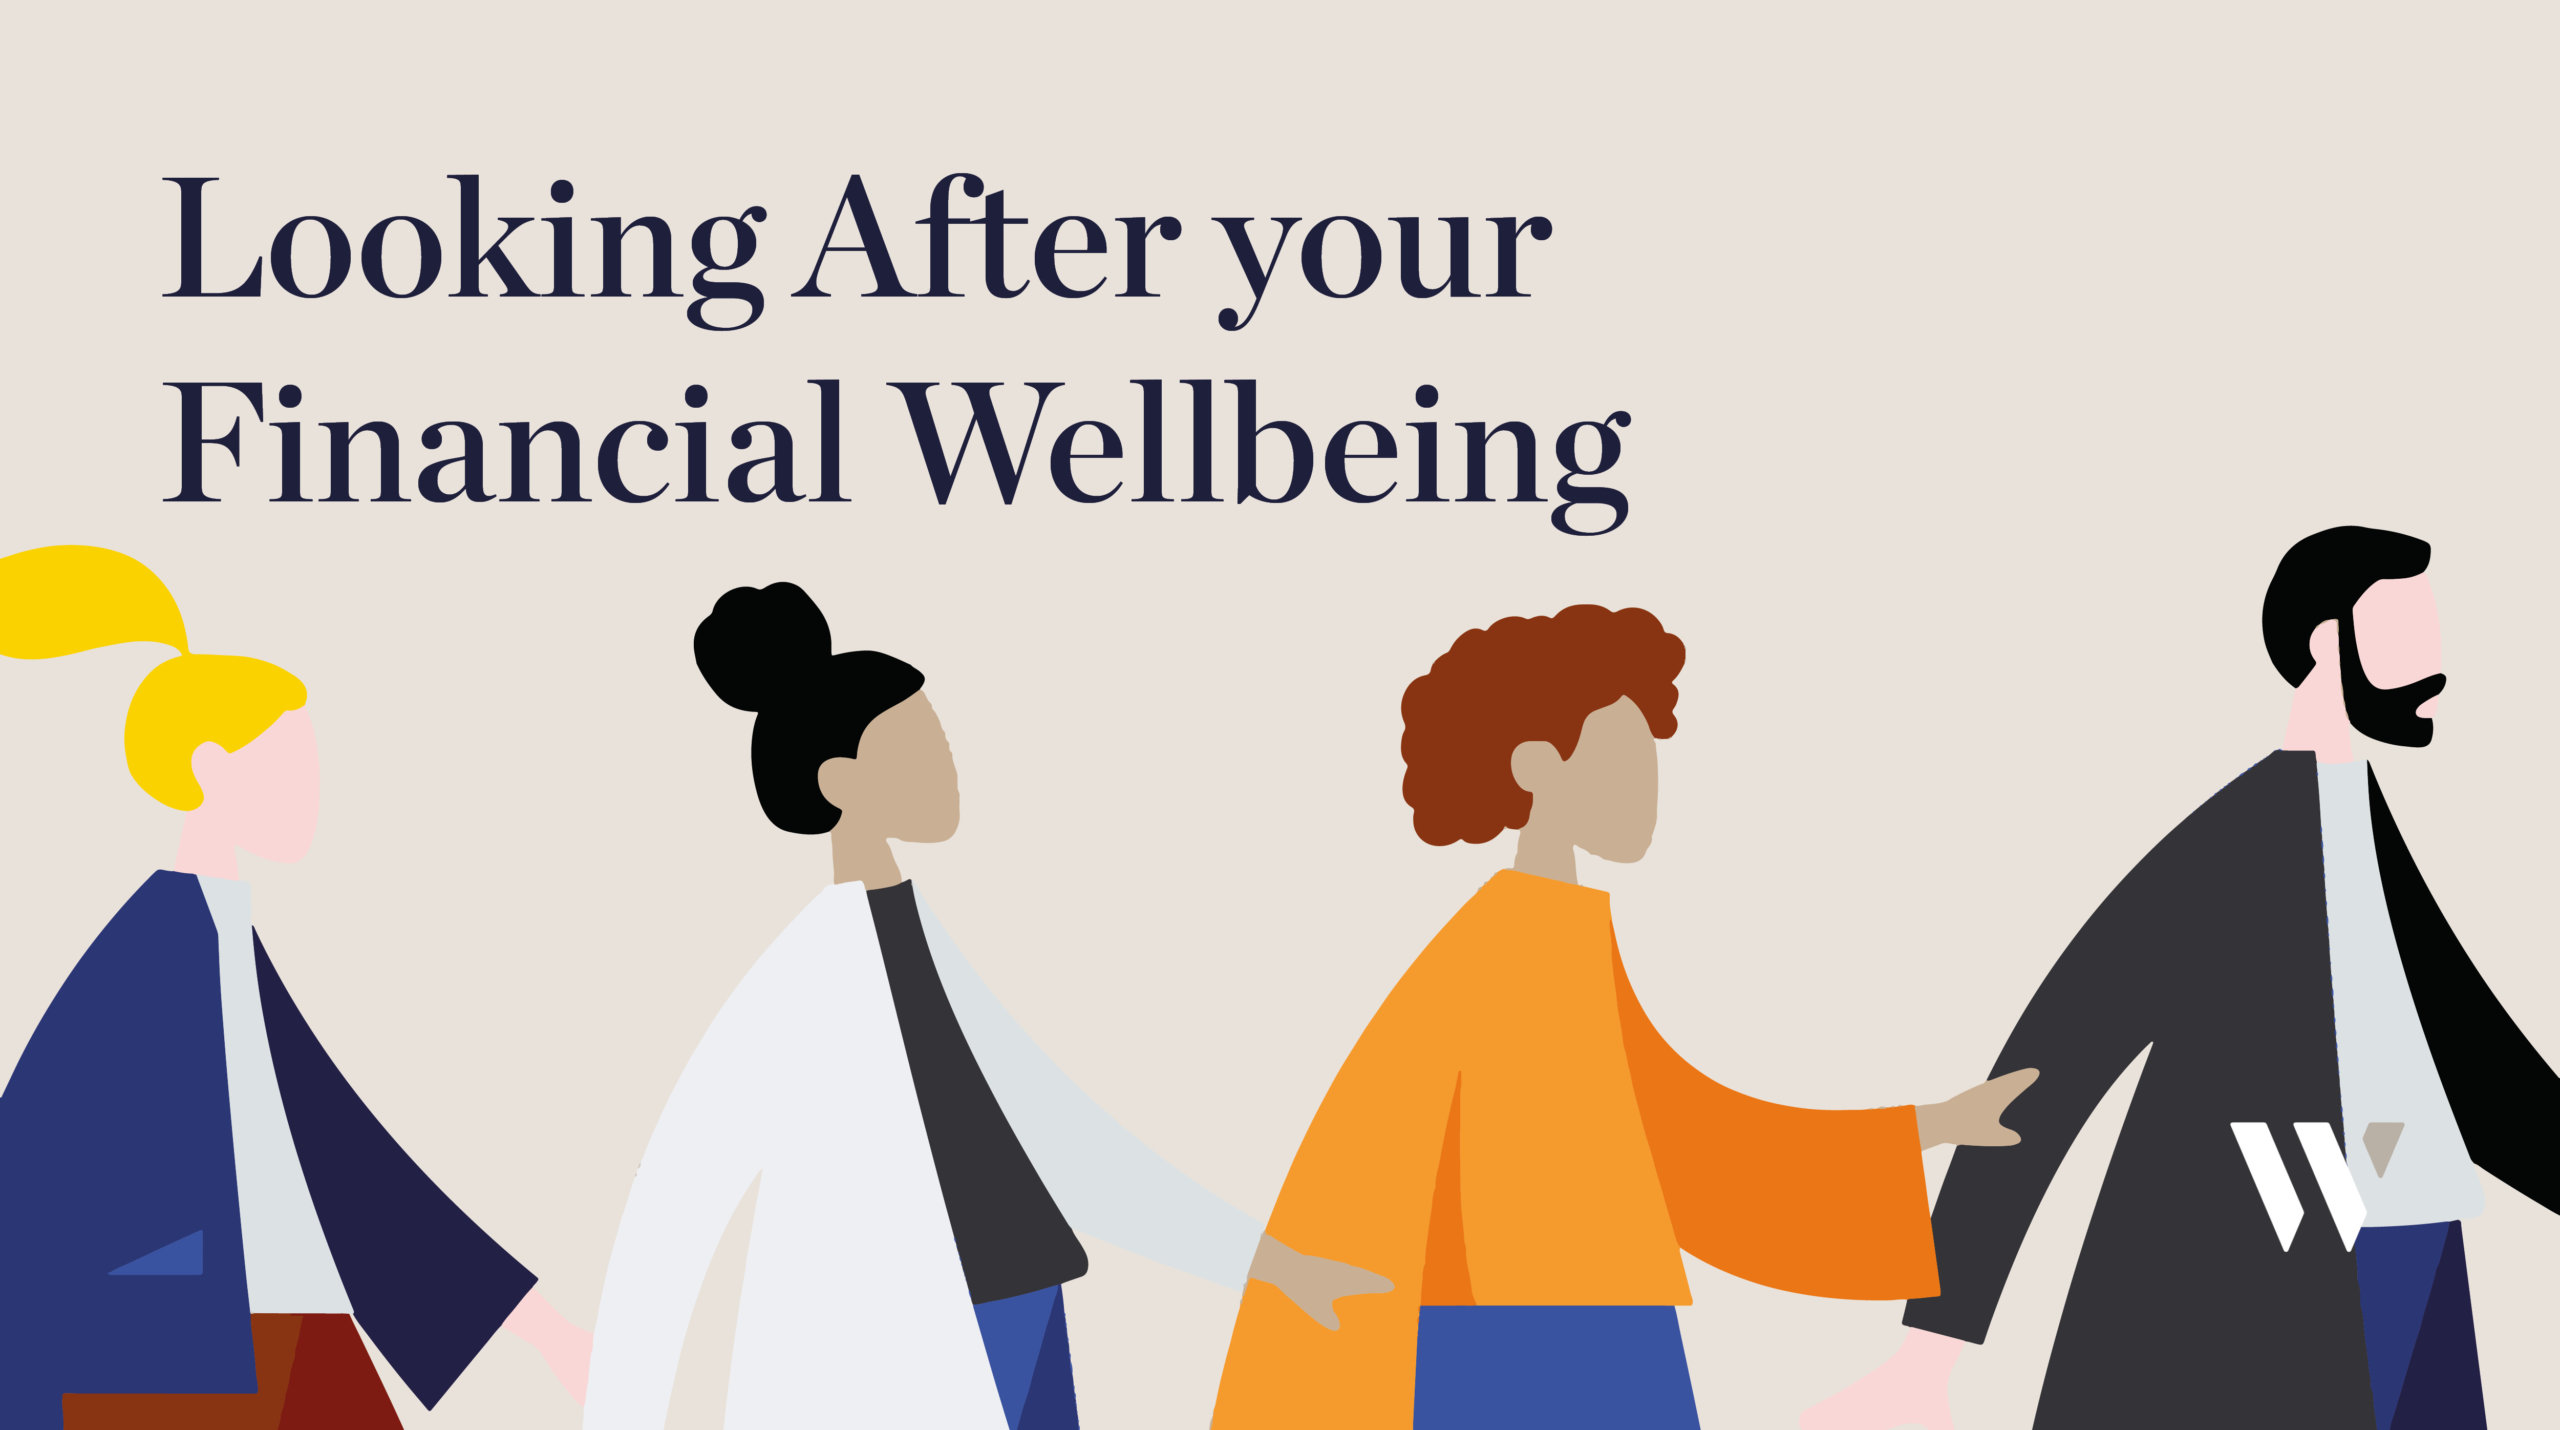 Looking After your Financial Wellbeing